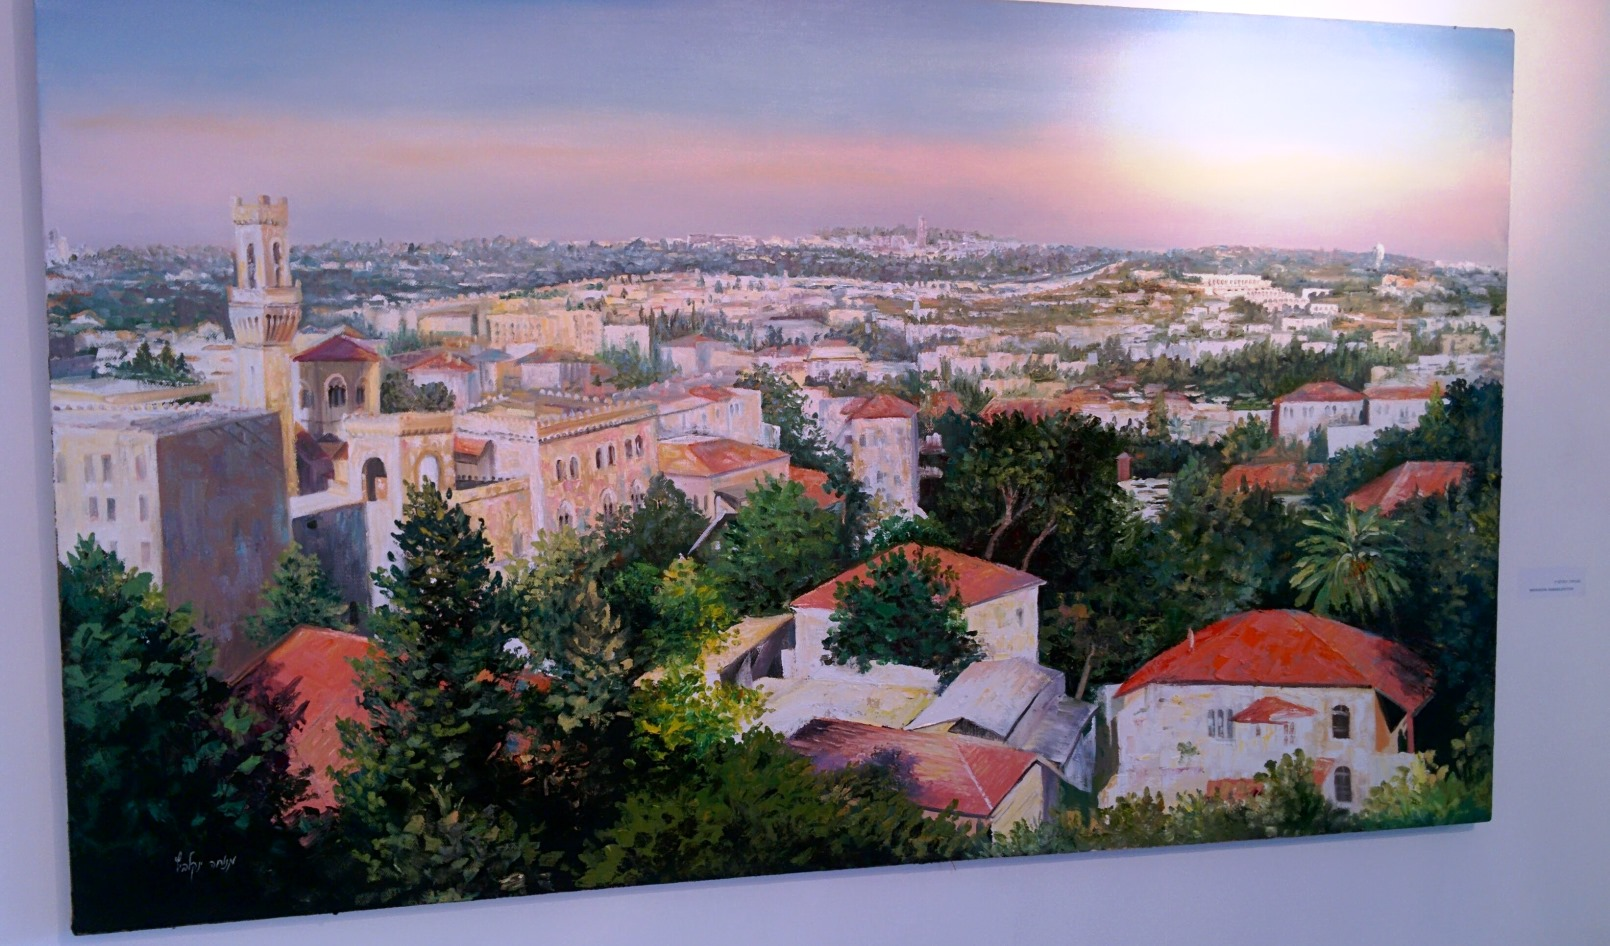 Another painting of Jerusalem by Menucha Yankelevitch. Photo by Abigail Klein Leichman